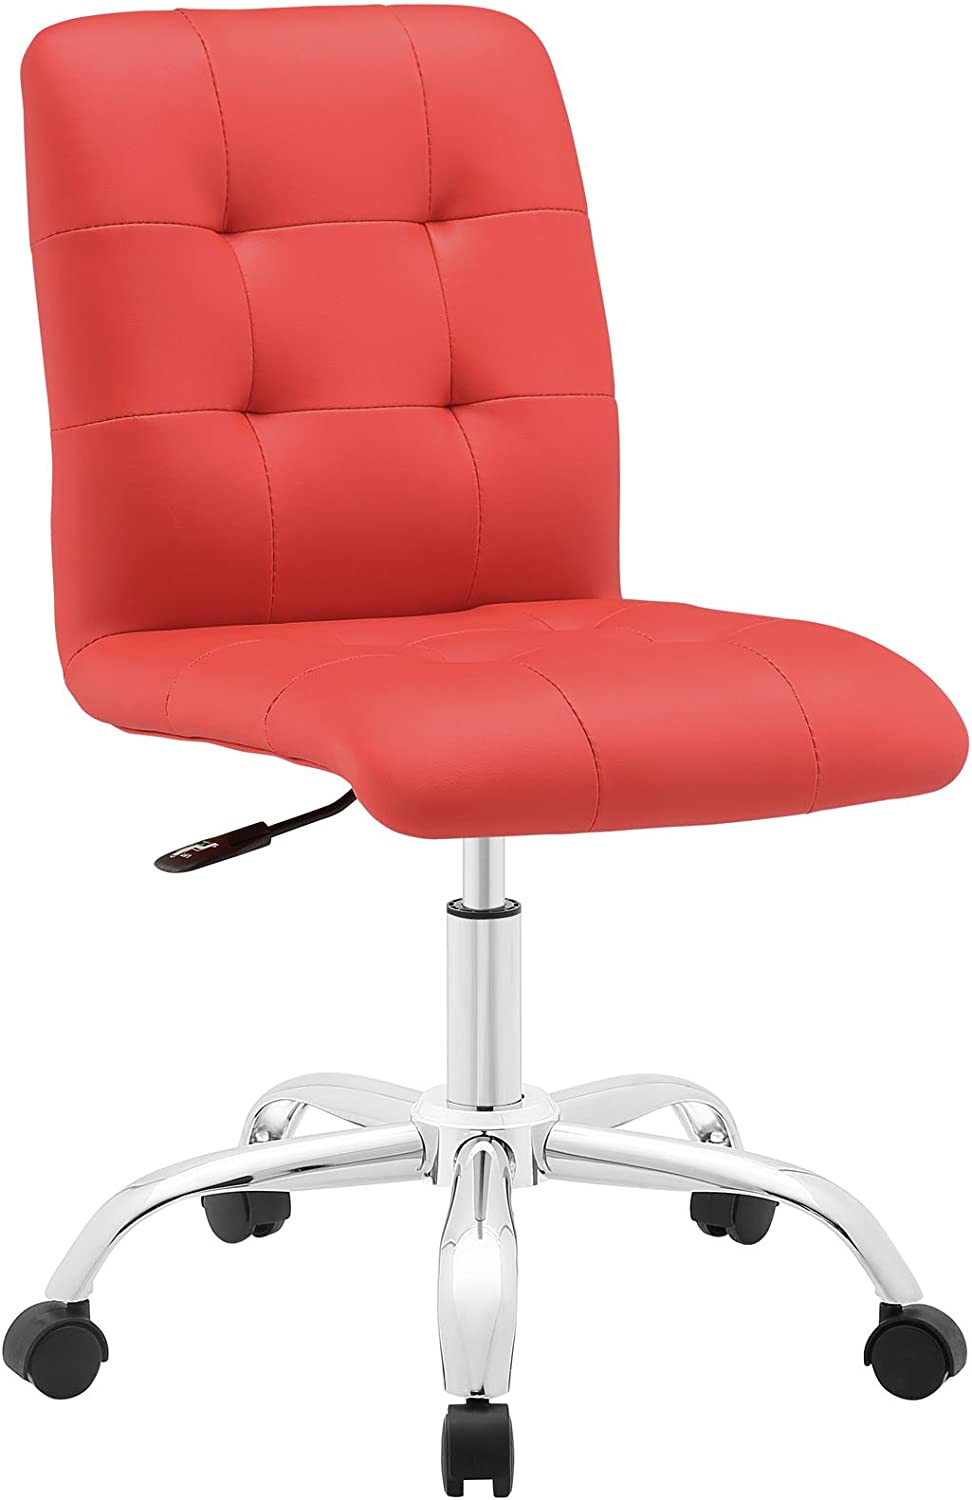 Modway Prim Ribbed Armless Mid Back Swivel Conference Office Chair In Red